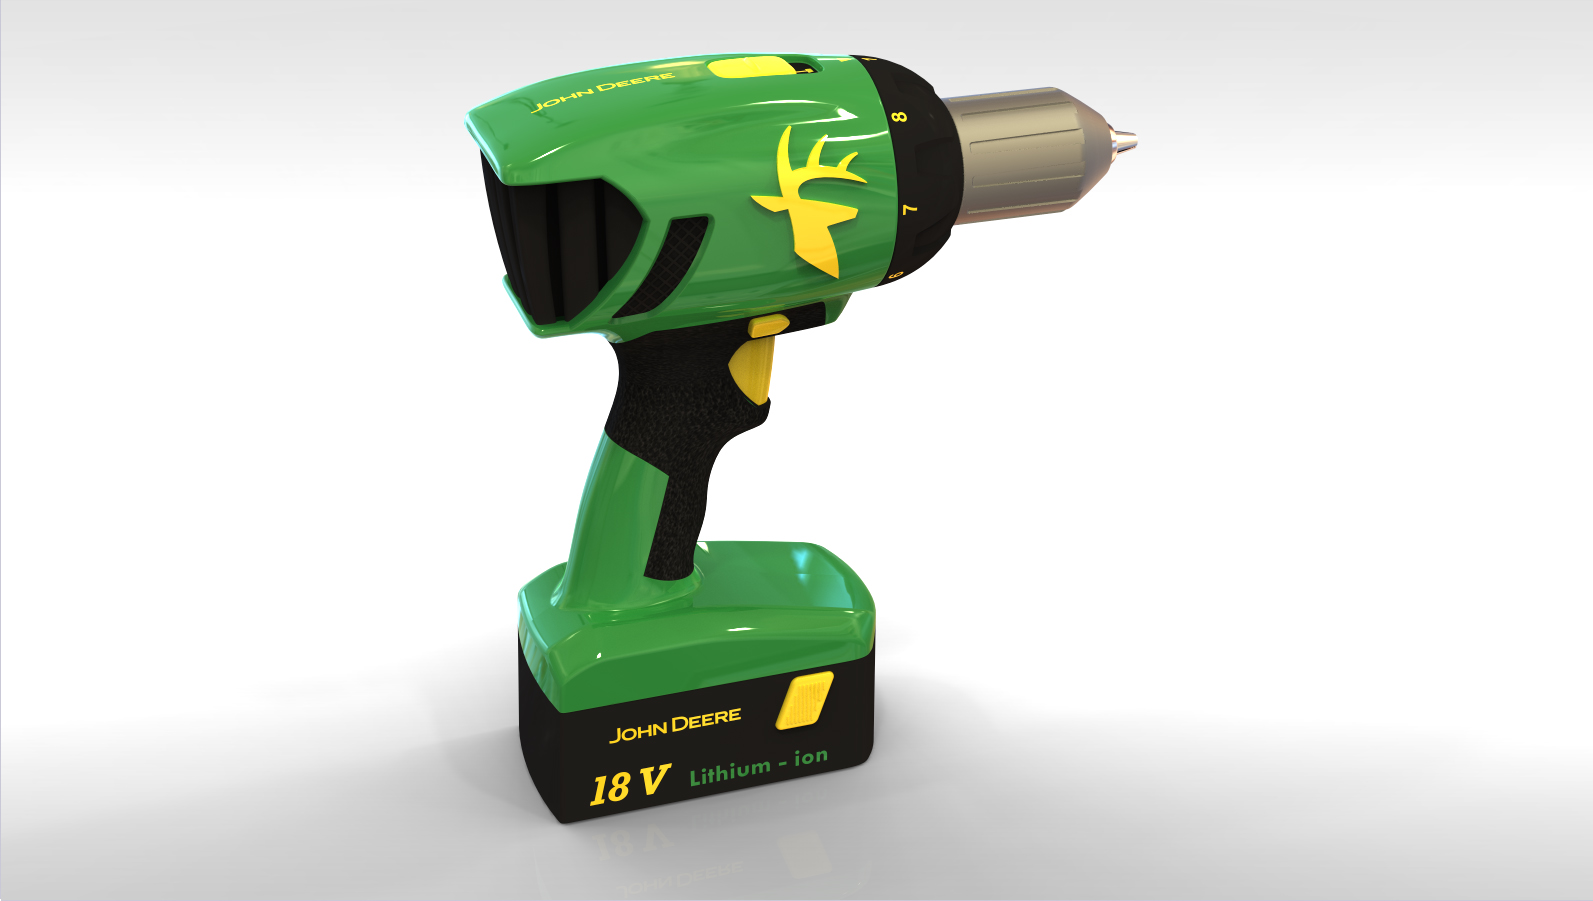 John Deere Cordless Power Drill by Marcus Lundberg at ...